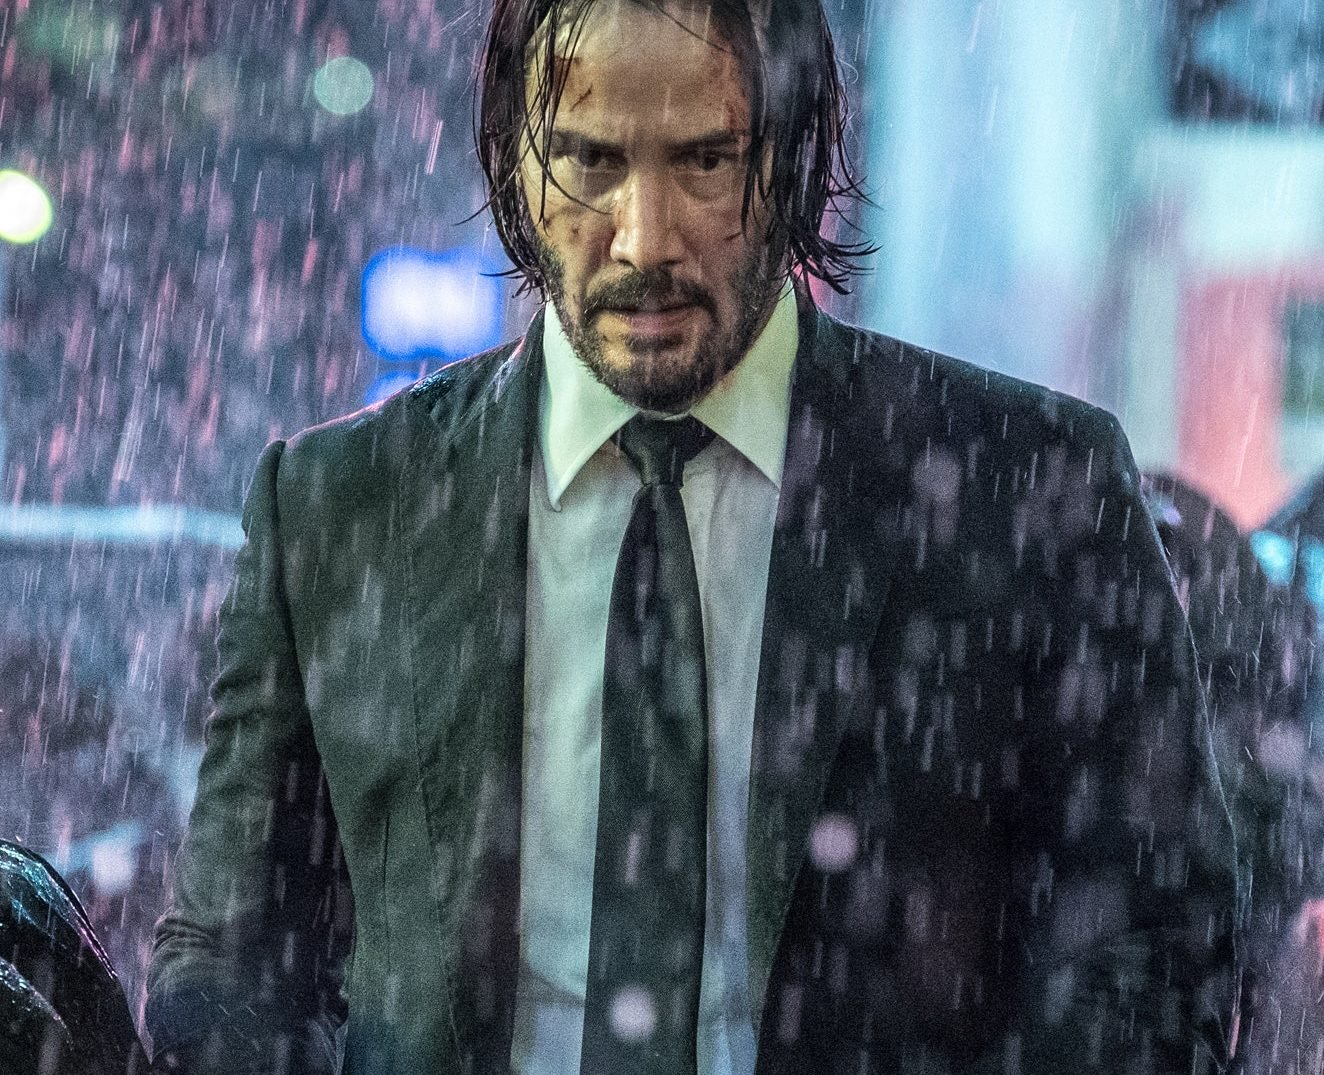 Richard JohnWick e1622110572261 20 Things You Never Knew About Keanu Reeves